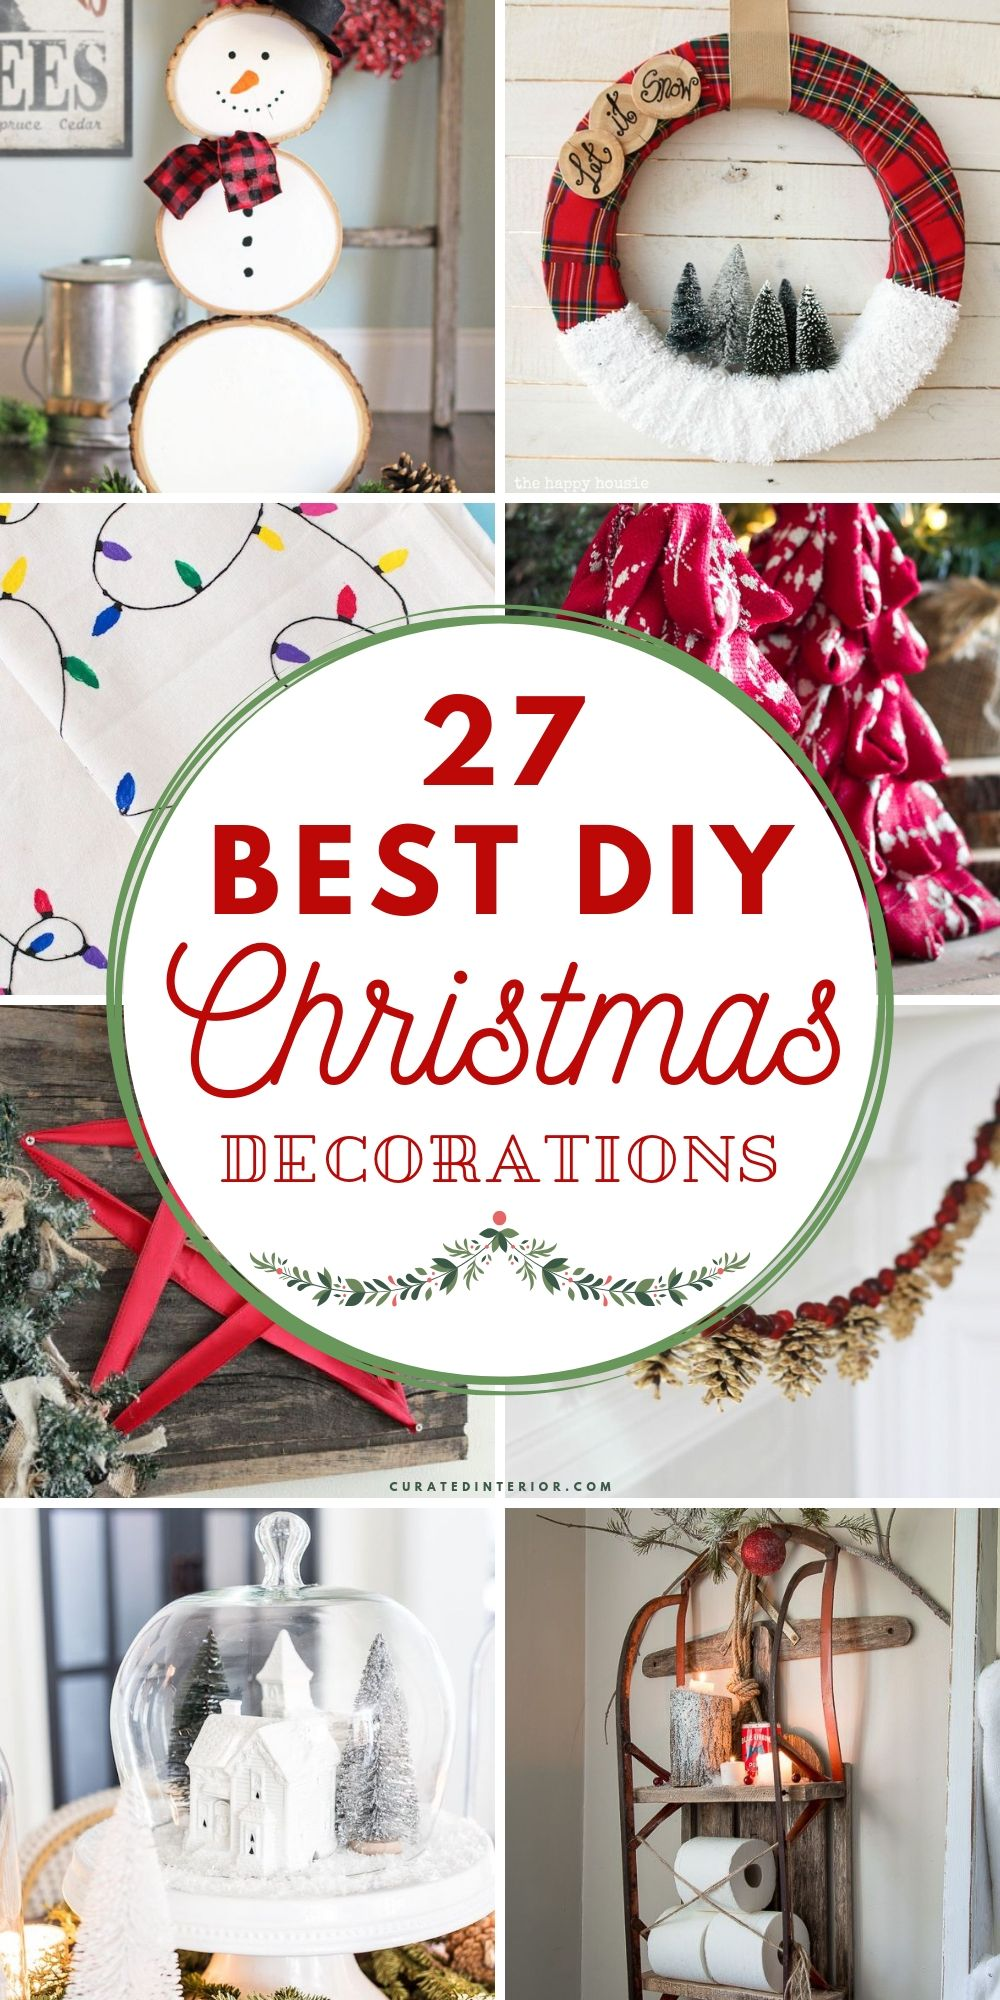 27 Best DIY Christmas Decorations! #Christmas #ChristmasDecor #ChristmasDIY #DIYDecor